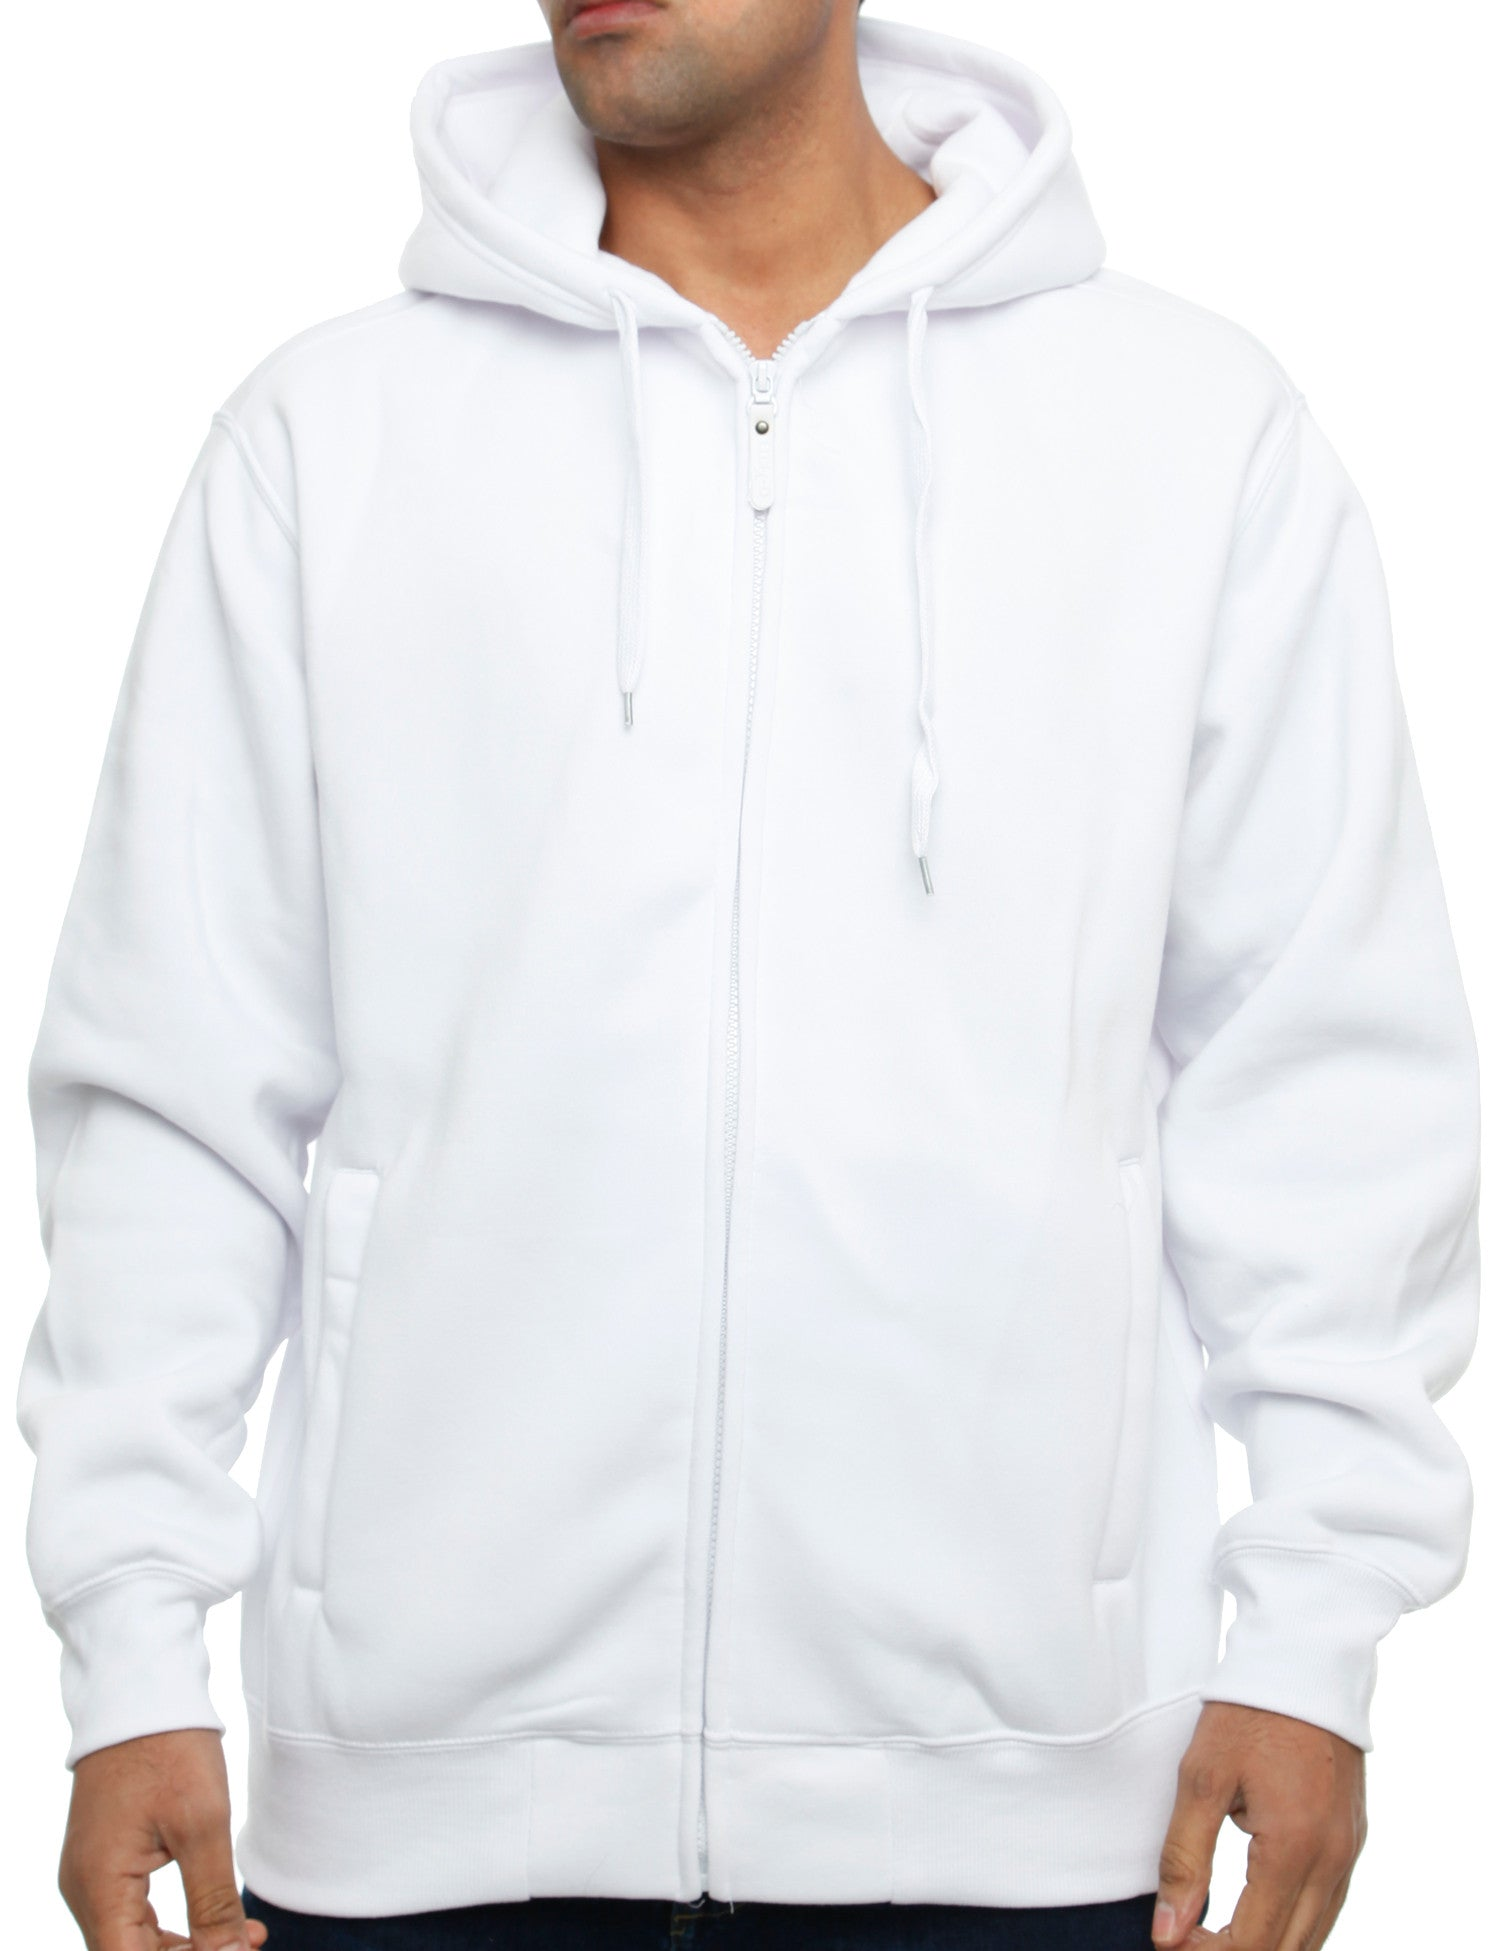 Imperious Fleece Hoody 10221A White